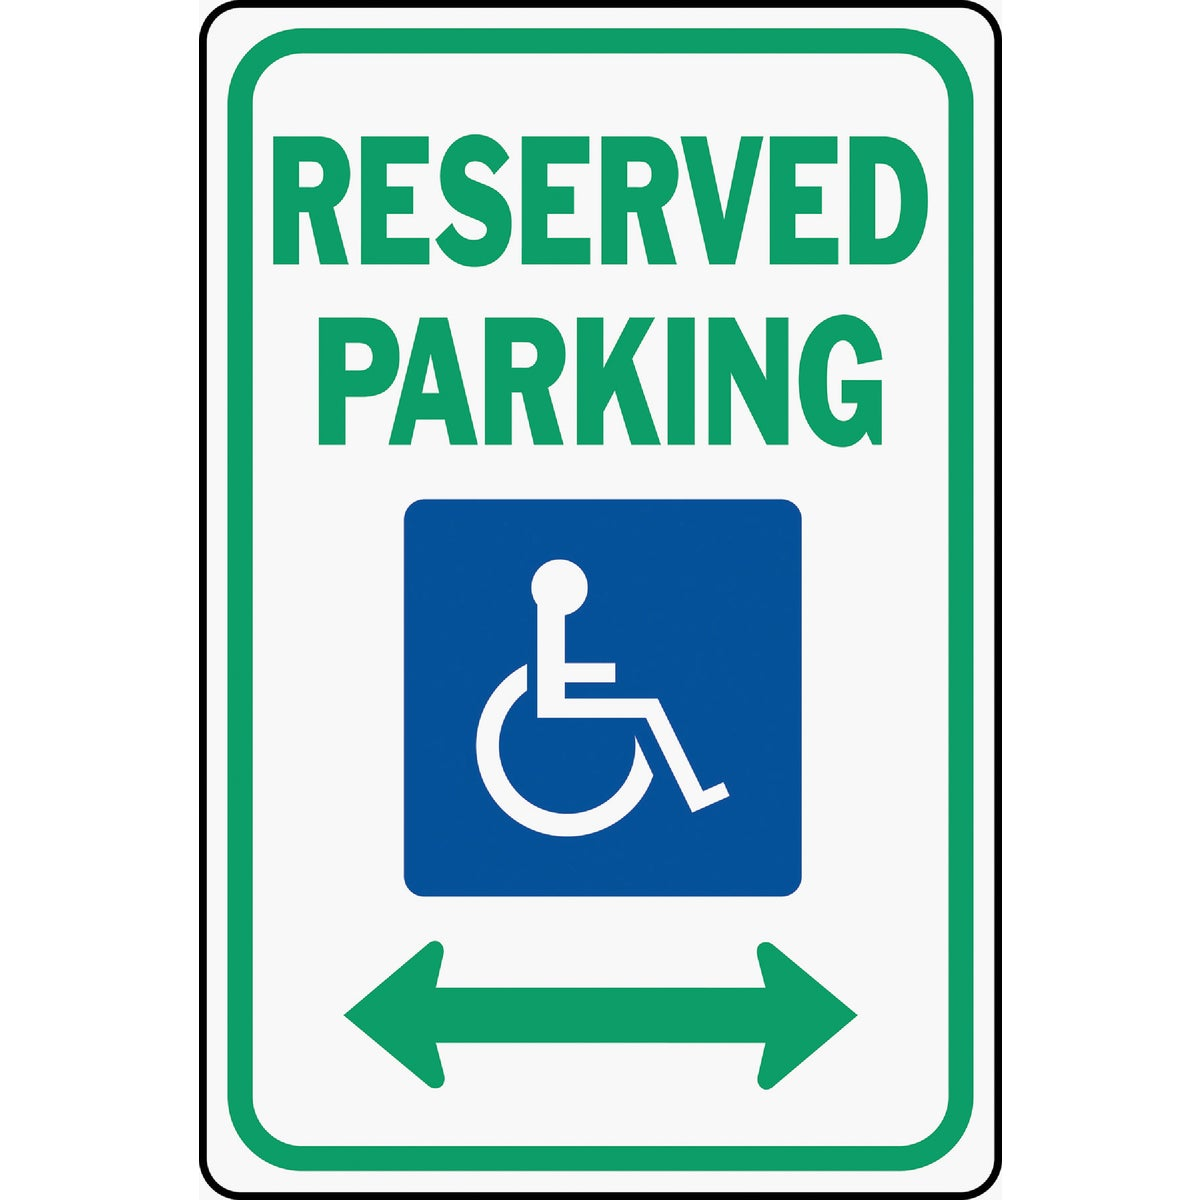 12X18 RESERVED PARK SIGN - HW-32 by Hy Ko Prods Co